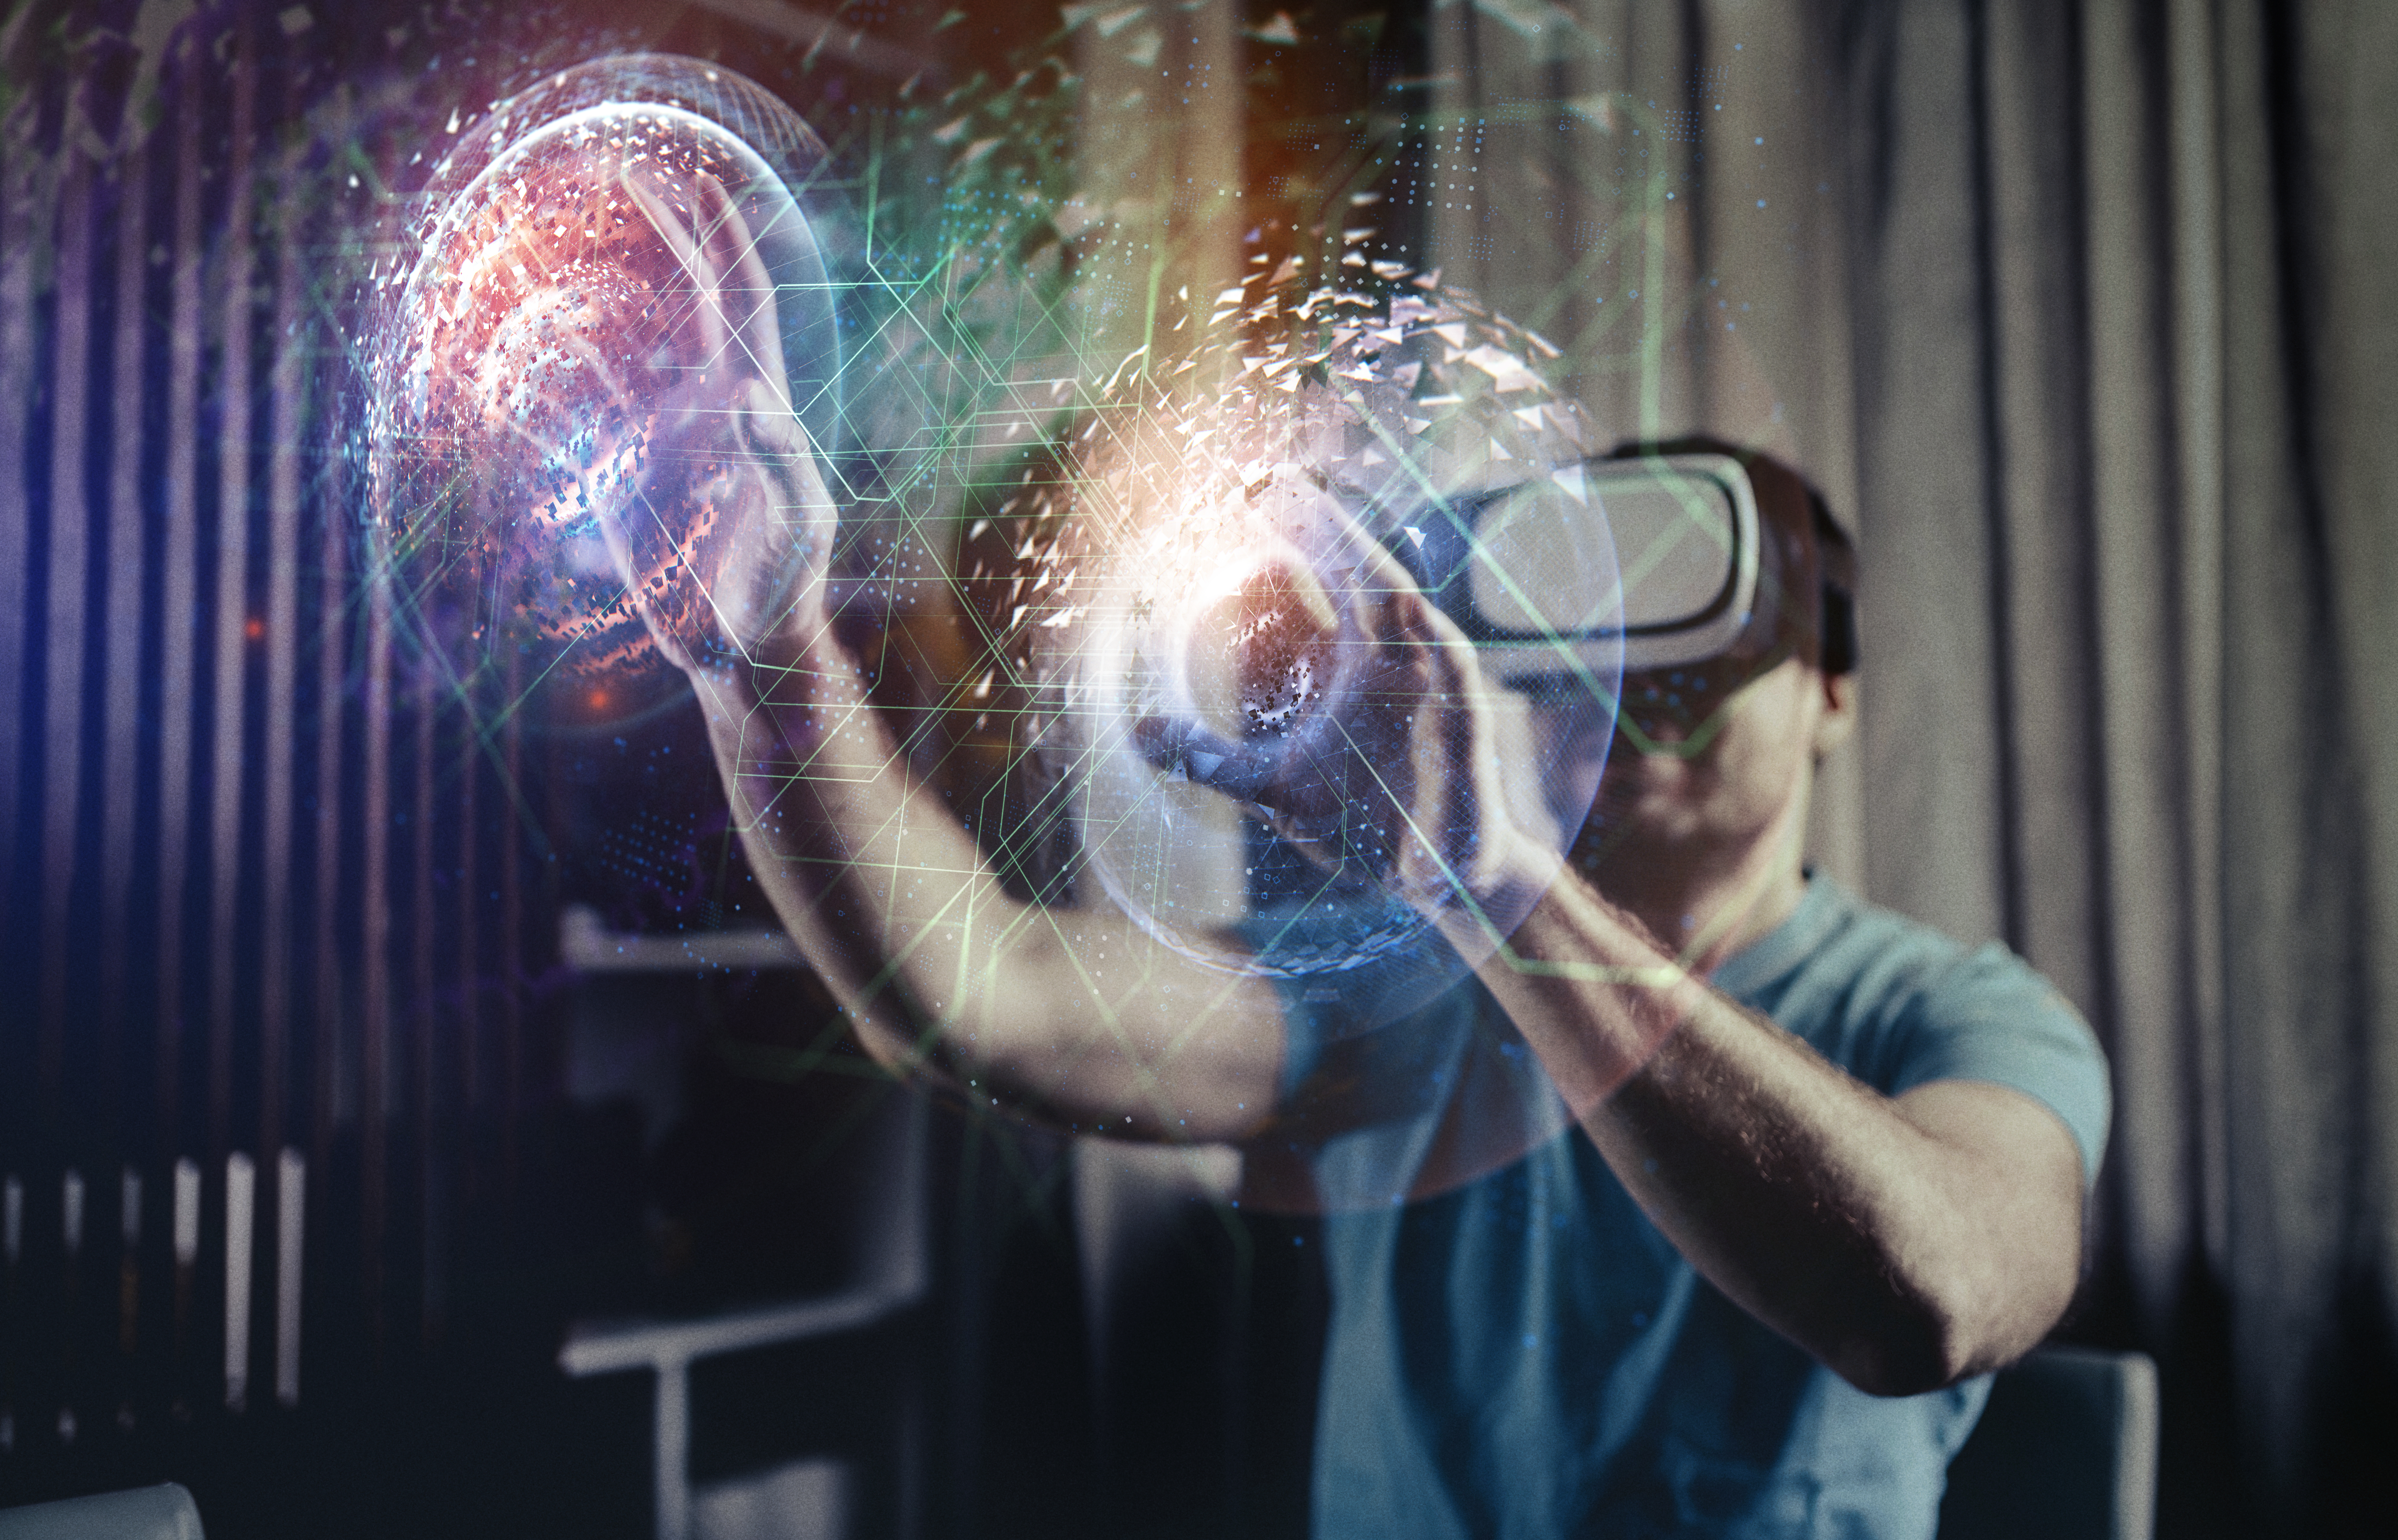 Image of a person wearing a VR headset and two 3D orbs in front of his hands.